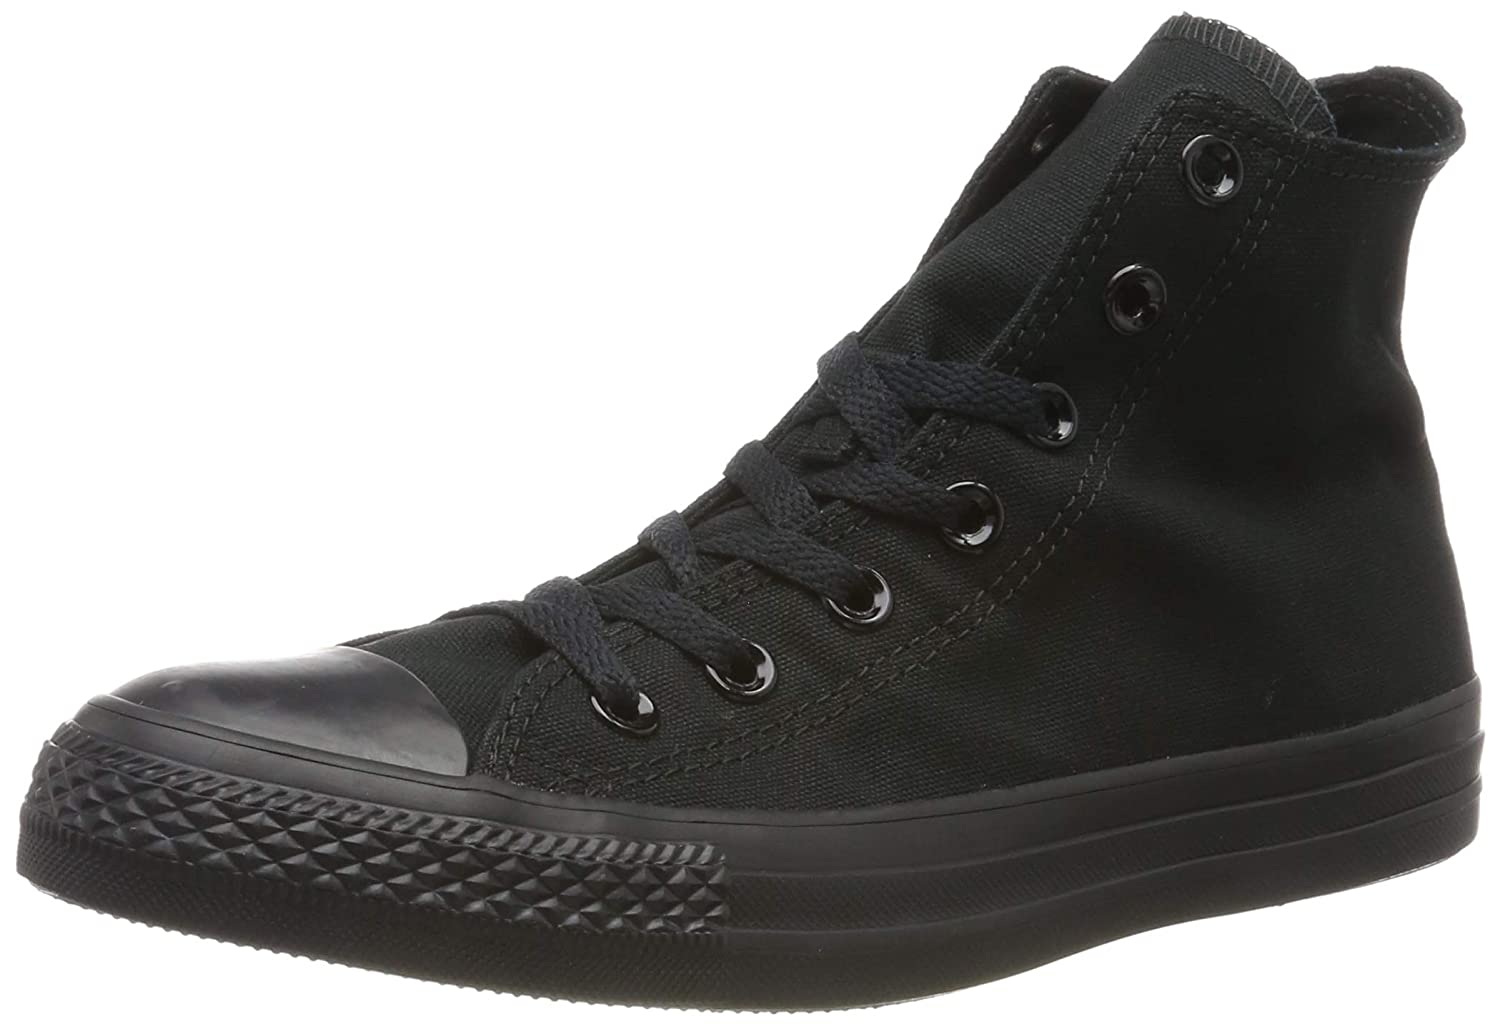 Black Black Converse Chuck Taylor All Star 2018 Seasonal High Top Sneaker